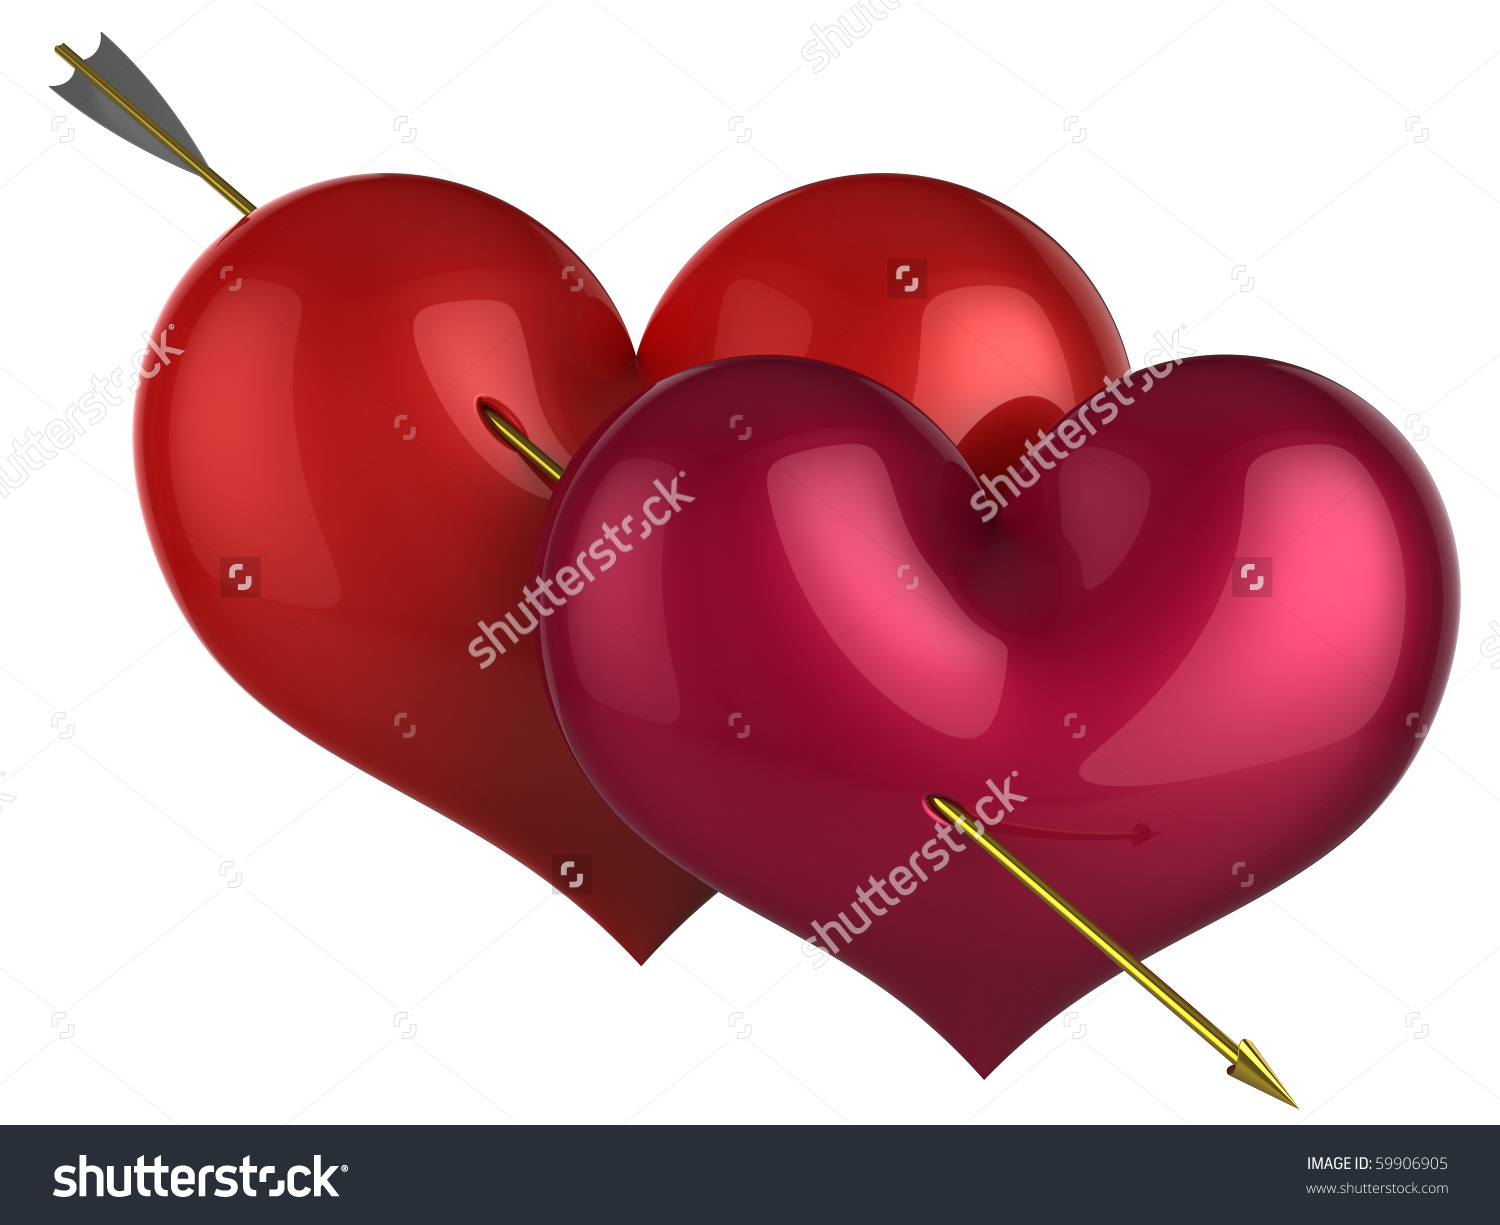 Hearts symbol forever love clipart free download Heart Shapes Couple Forever Love Red Stock Illustration 59906905 ... free download